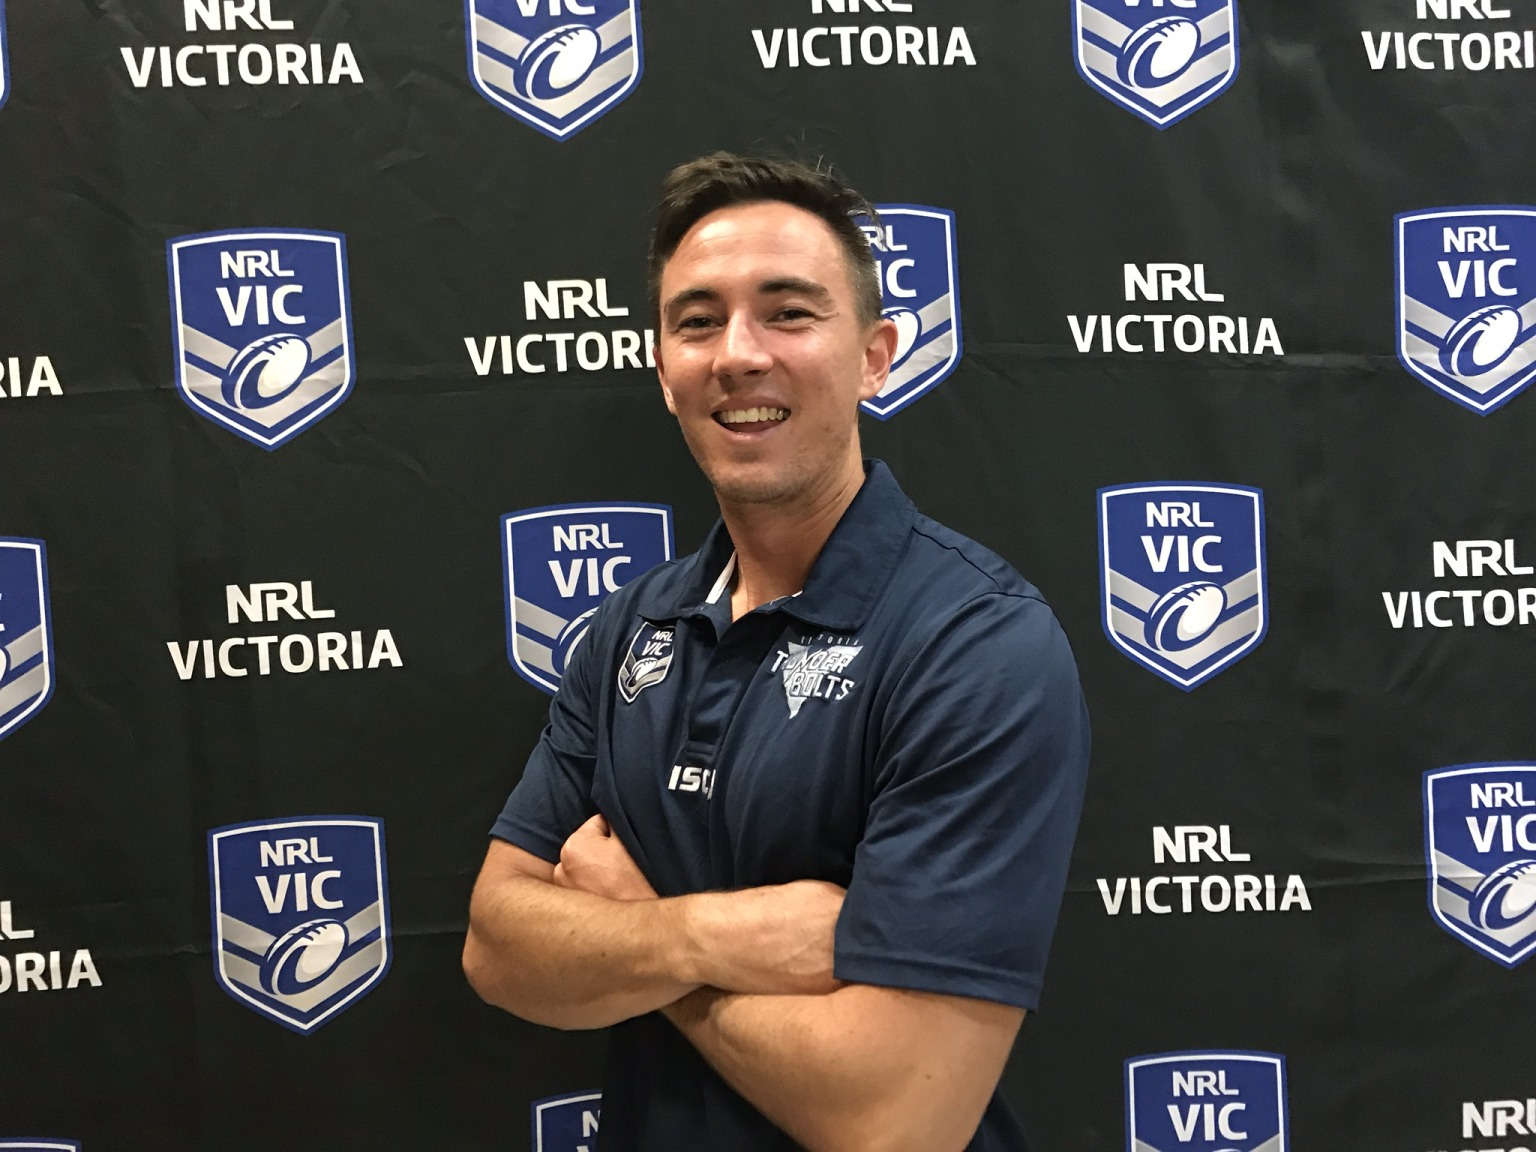 1378cf5d5d4 Head of Performance - Tom Frost - NRL Victoria - SportsTG